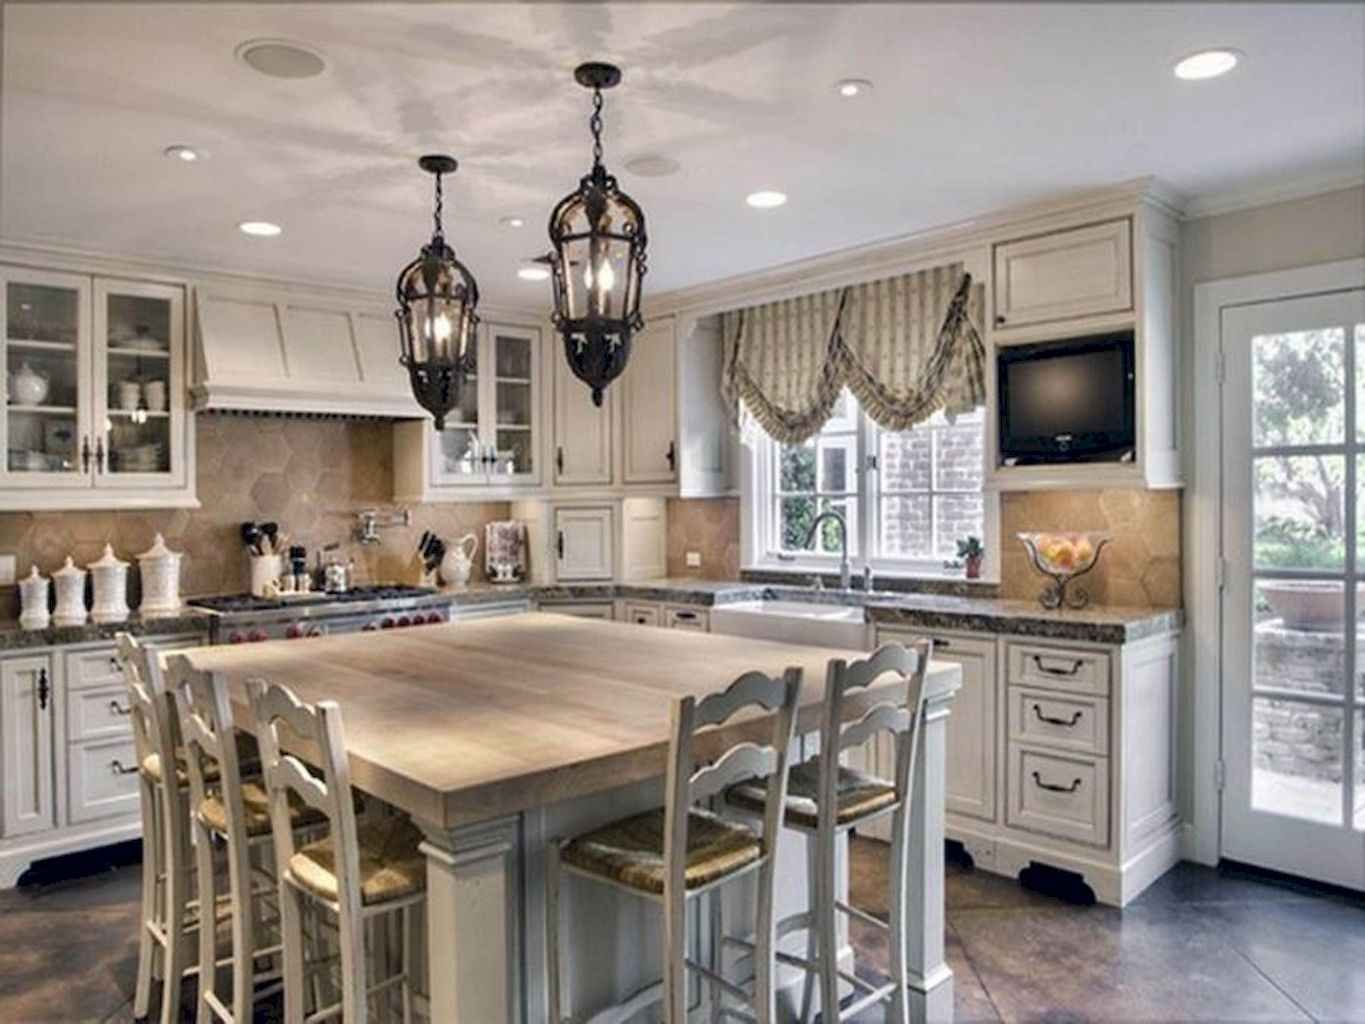 01 Simple French Country Kitchen Decor Ideas Decoradeas Country Kitchen Cabinets Country Kitchen Island French Country Kitchen Cabinets